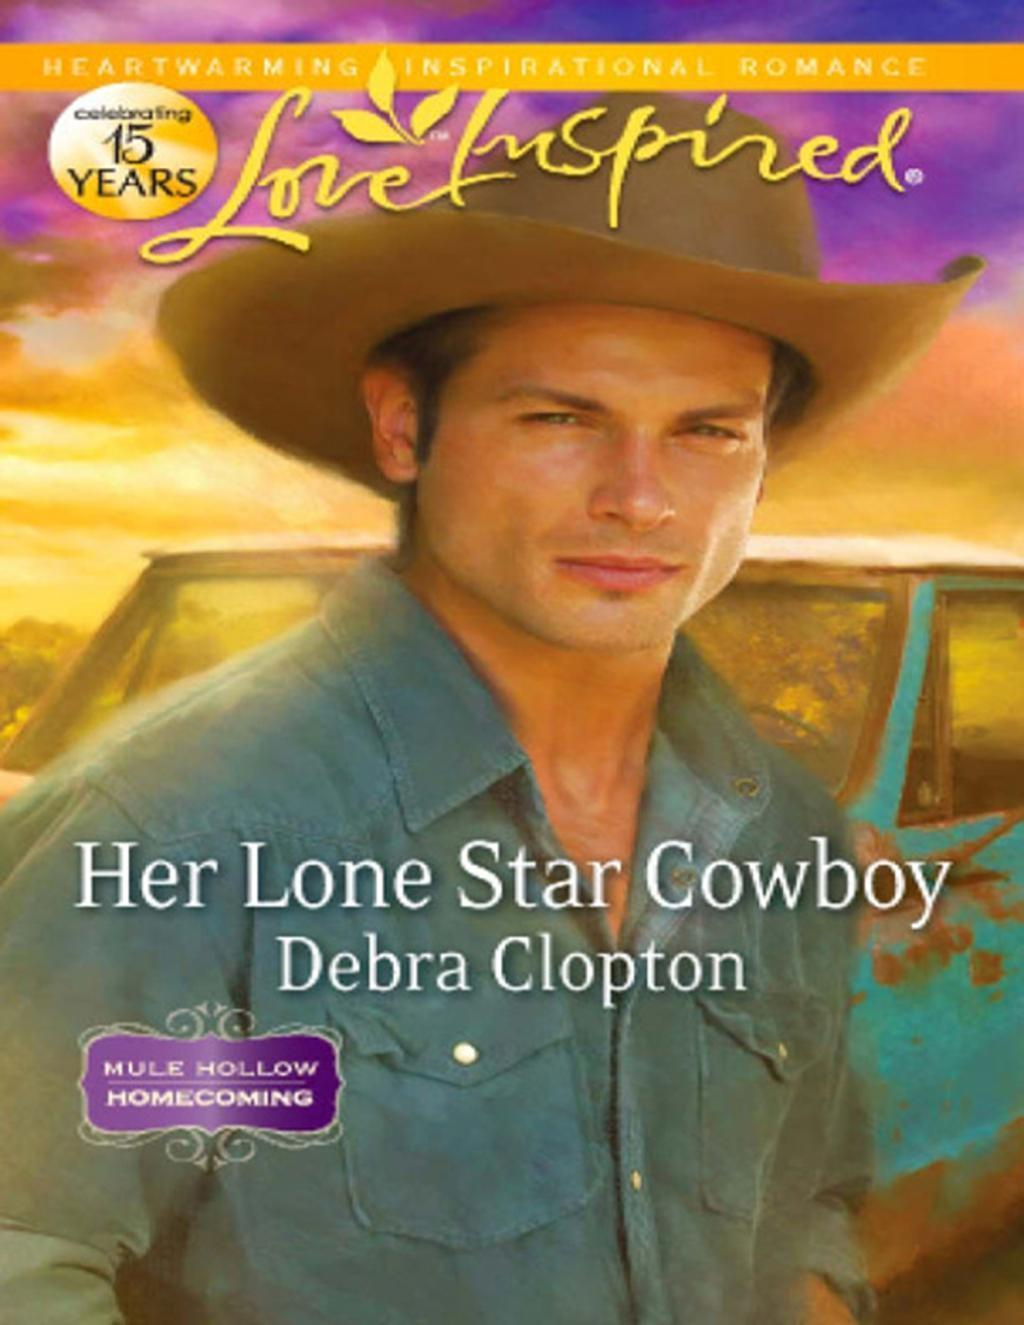 Her Lone Star Cowboy (Mills & Boon Love Inspired) (Mule Hollow Homecoming, Book 2)